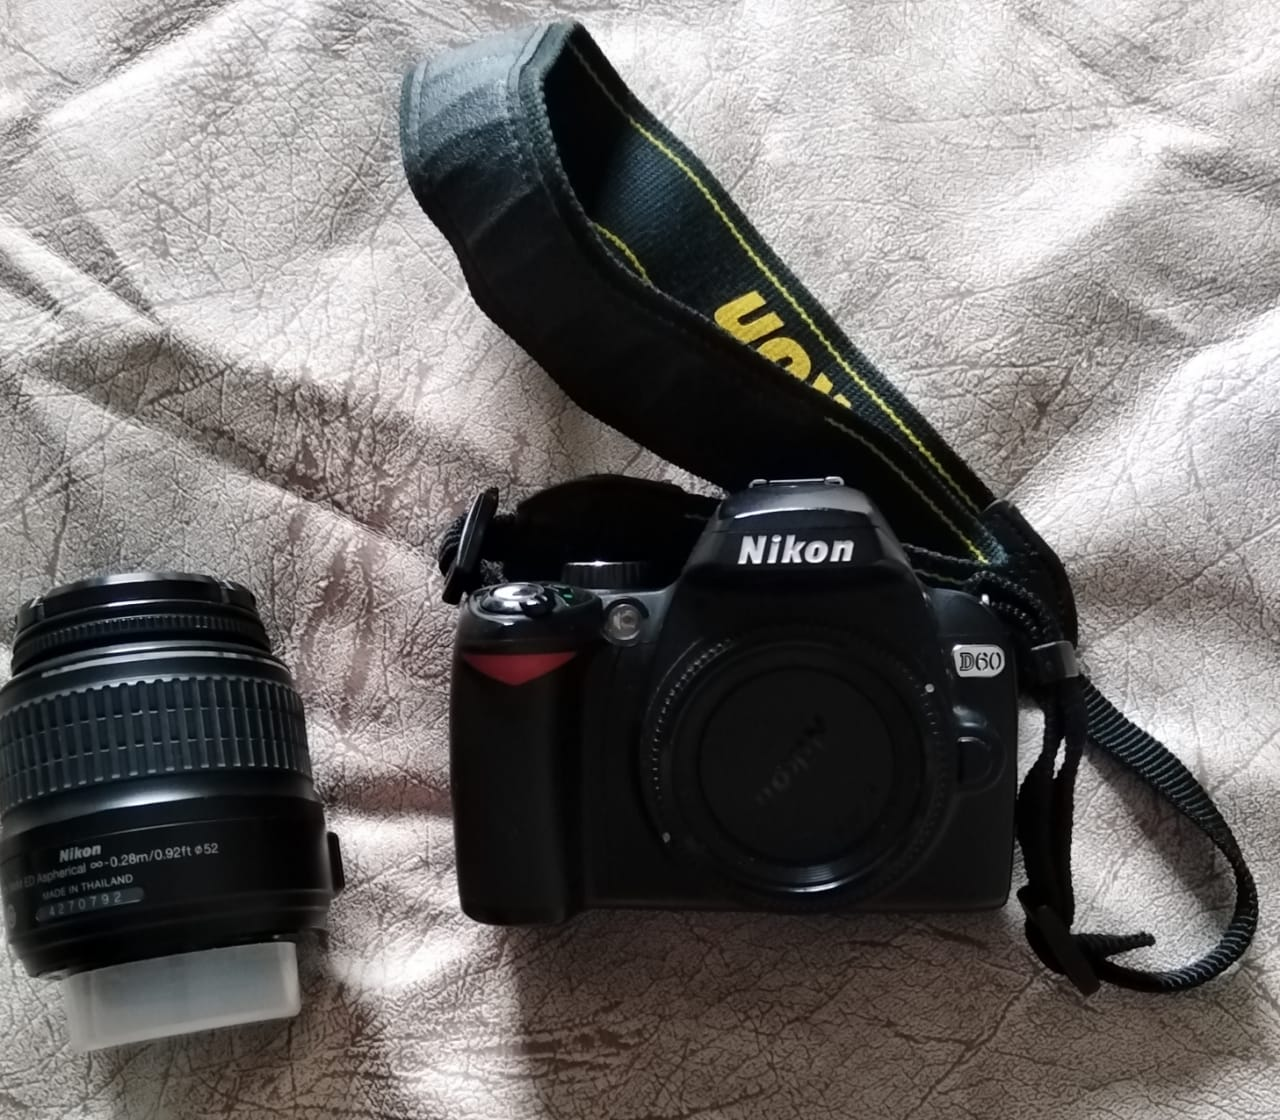 NIKON D60 CAMERA WITH ACCESSORIES